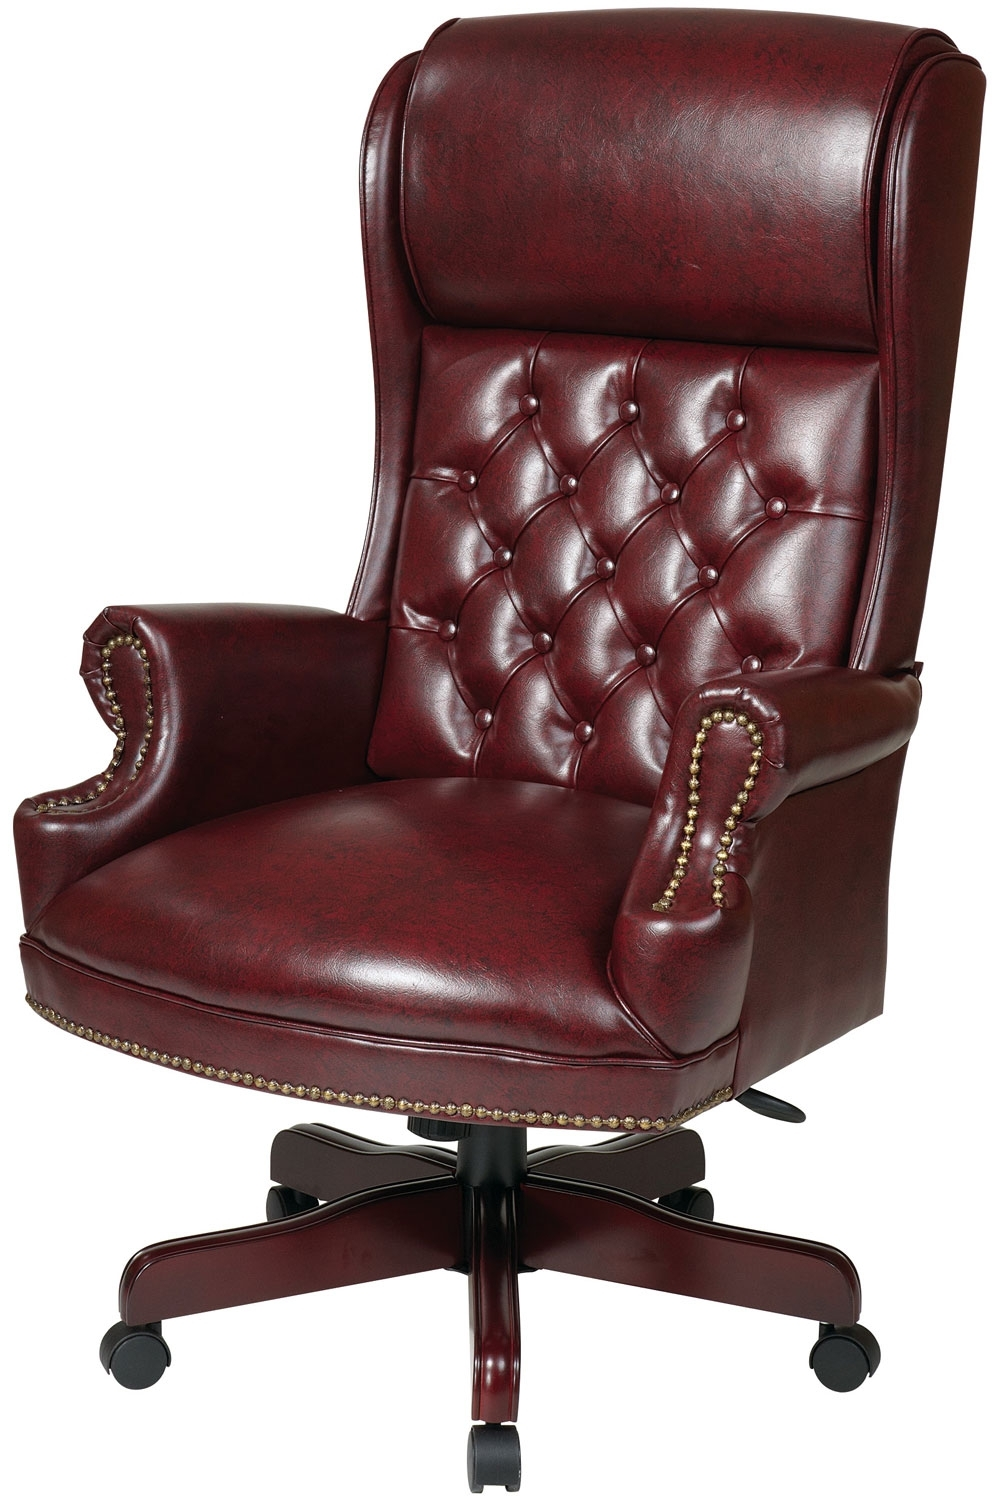 Executive Office Chairs Regarding Fashionable Tex228 Jt4 Office Star – Deluxe High Back Traditional Executive (View 20 of 20)